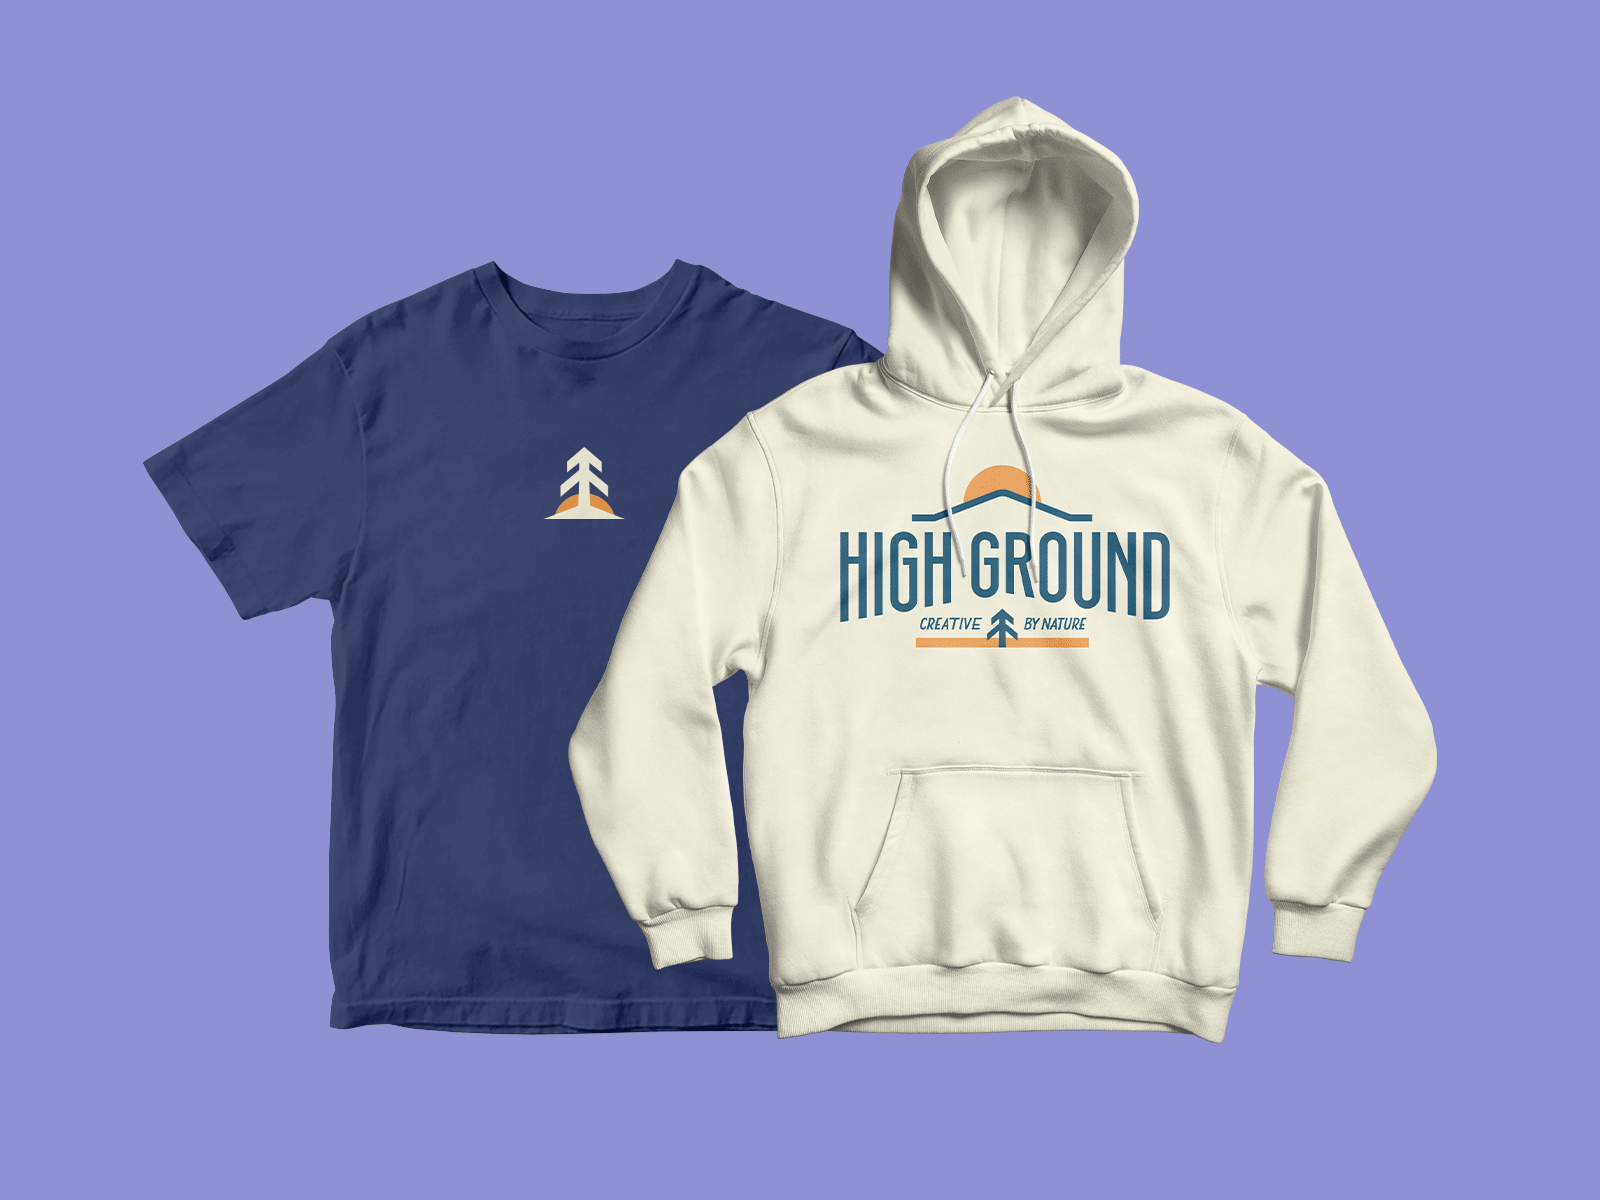 shirt and hoodie merchandise for High Ground Brand Identity Design Project